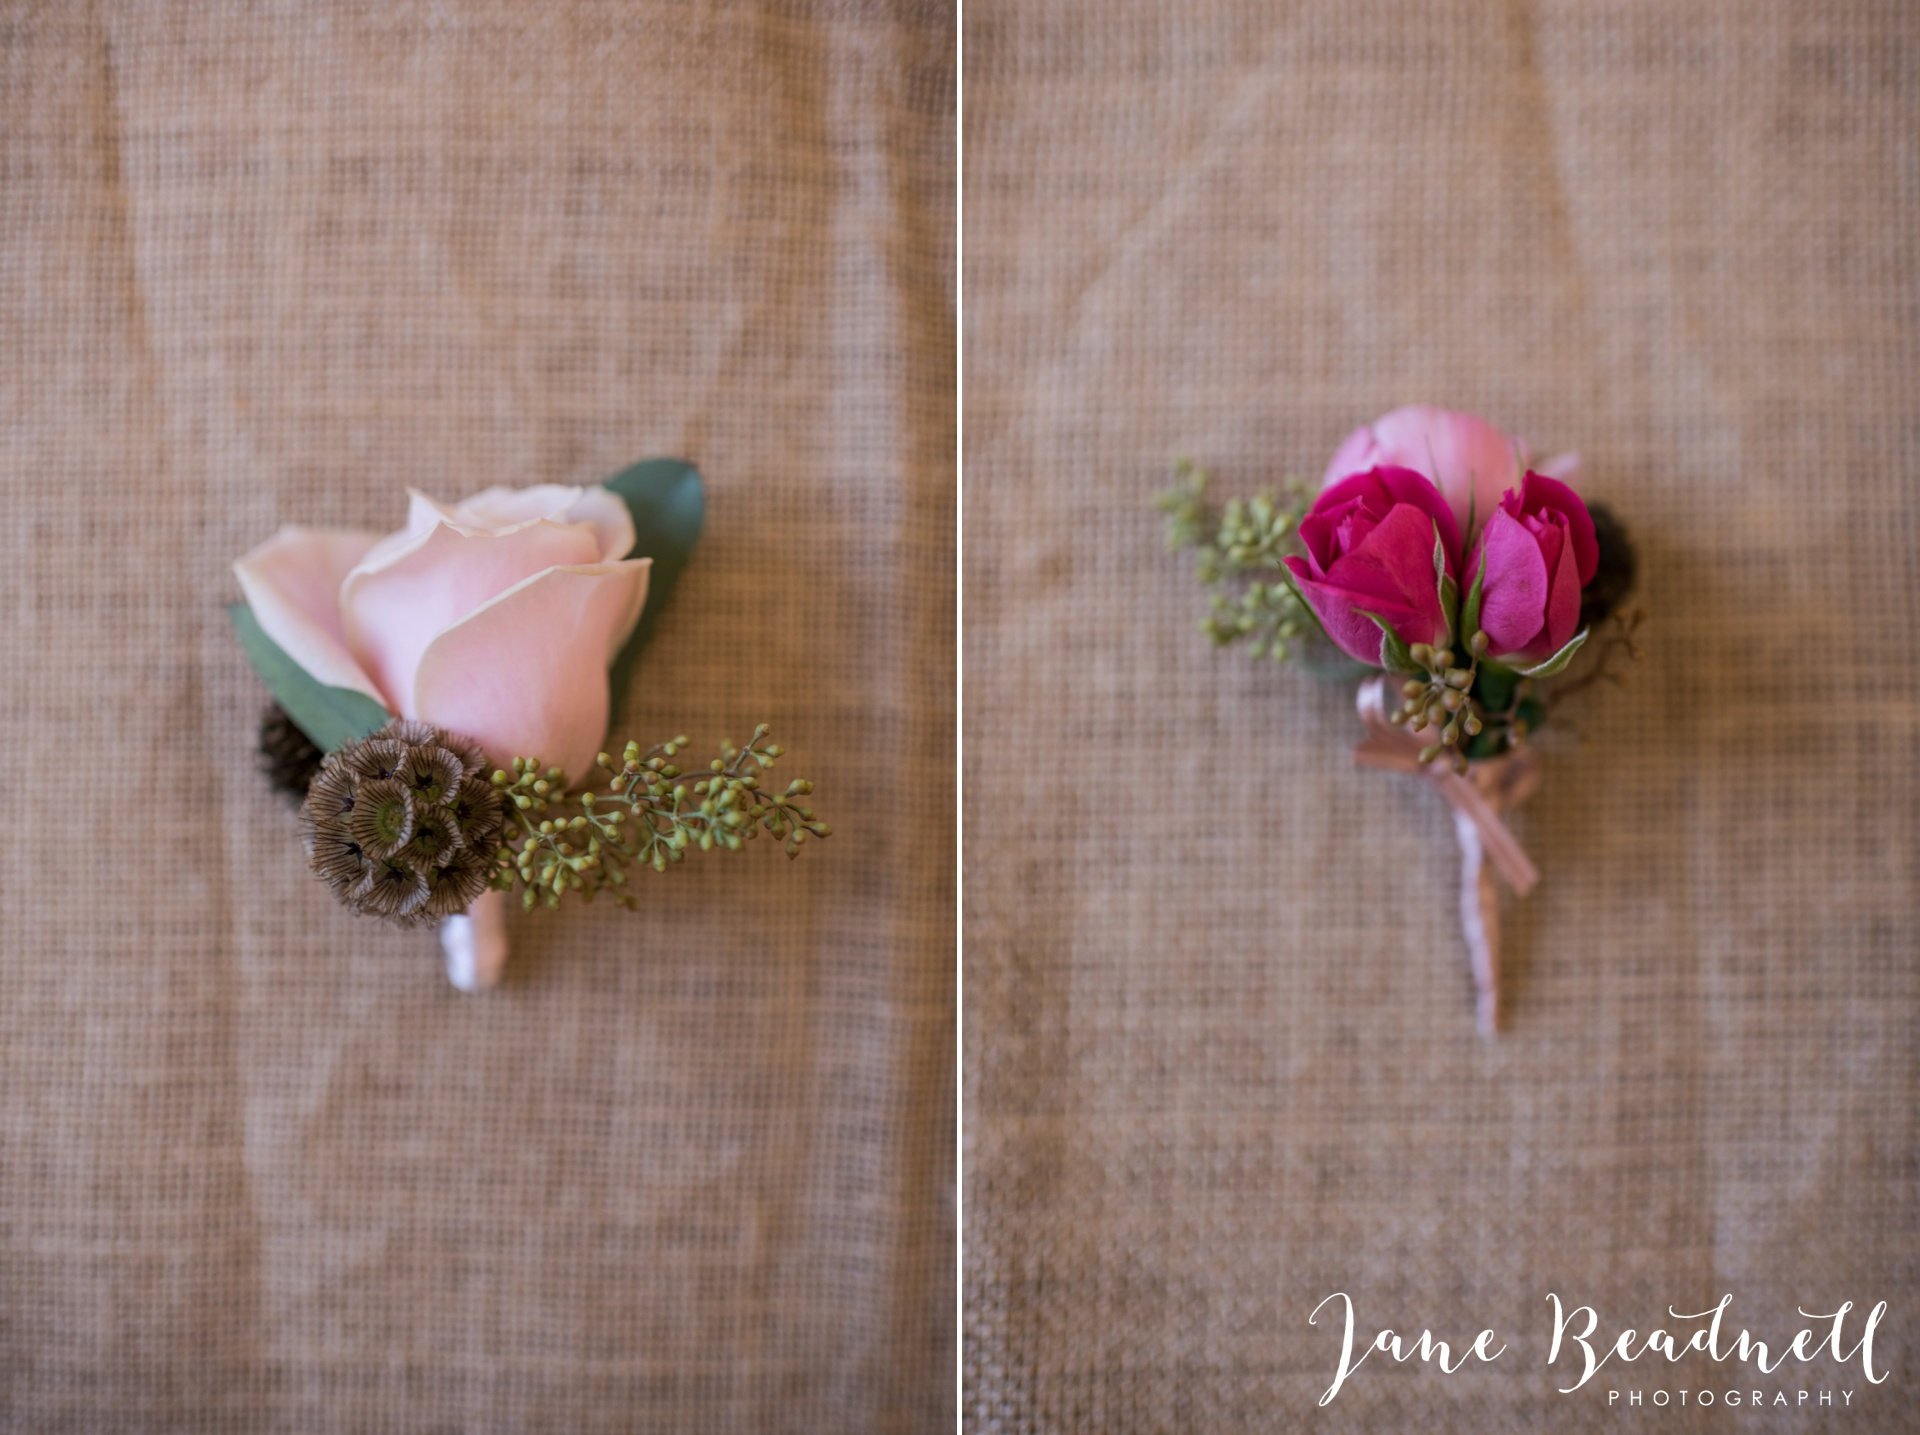 Leafy couture wedding flowers wedding photography by Jane Beadnell photography_0009